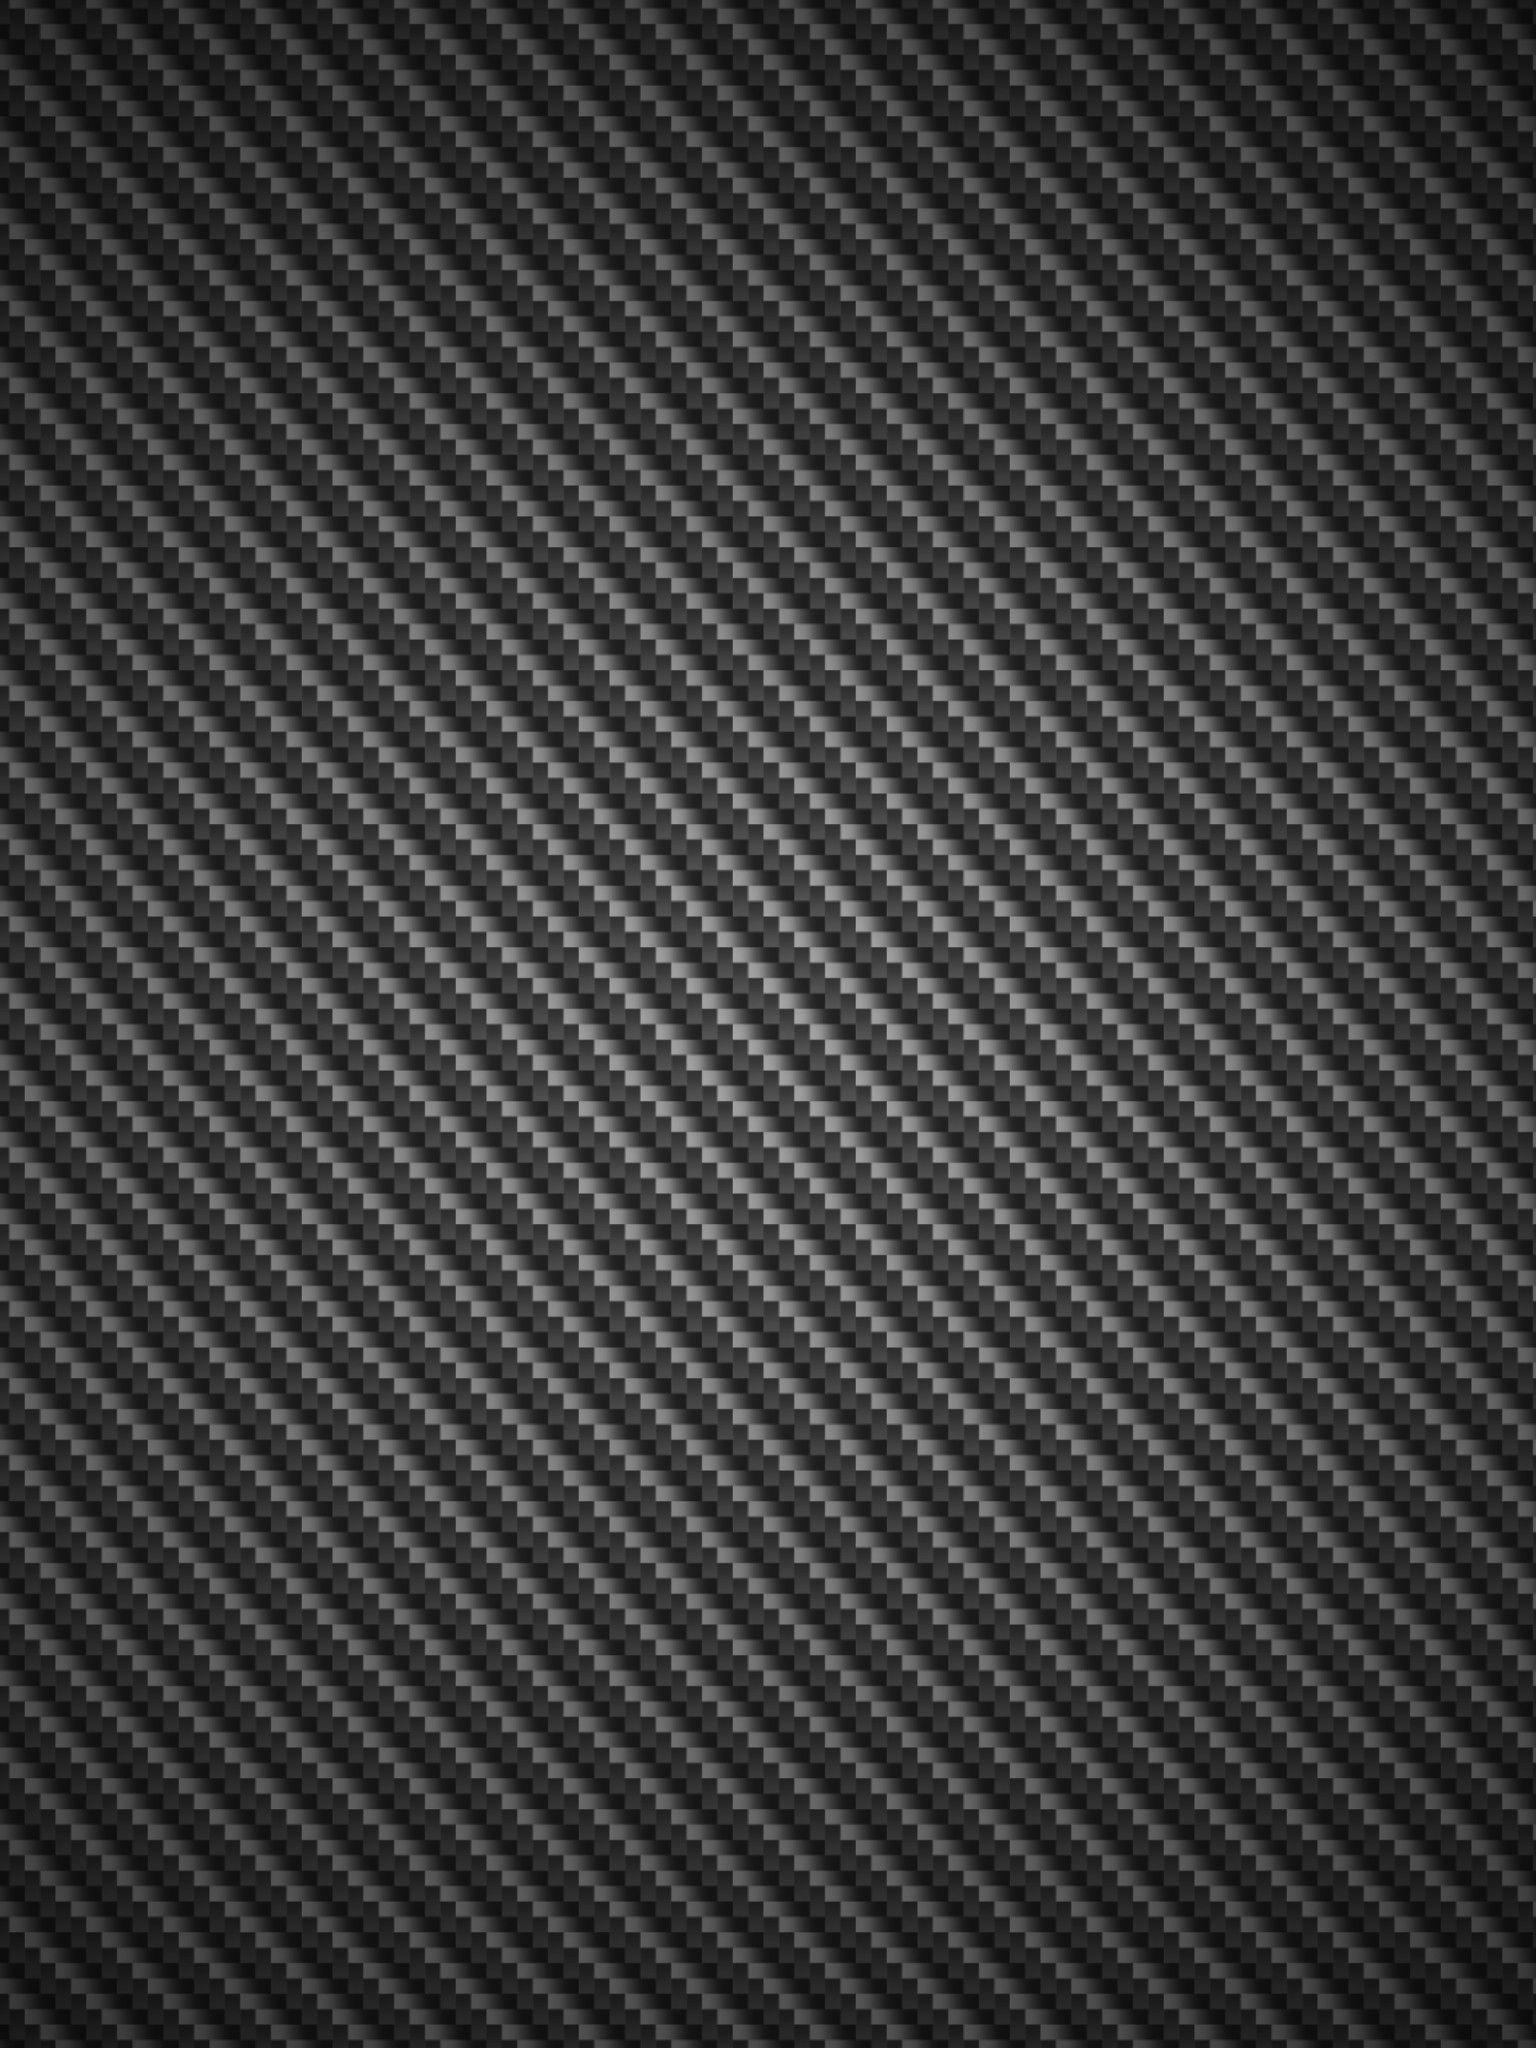 The Best Blue Carbon Fiber Wallpaper 4K Wallpapers